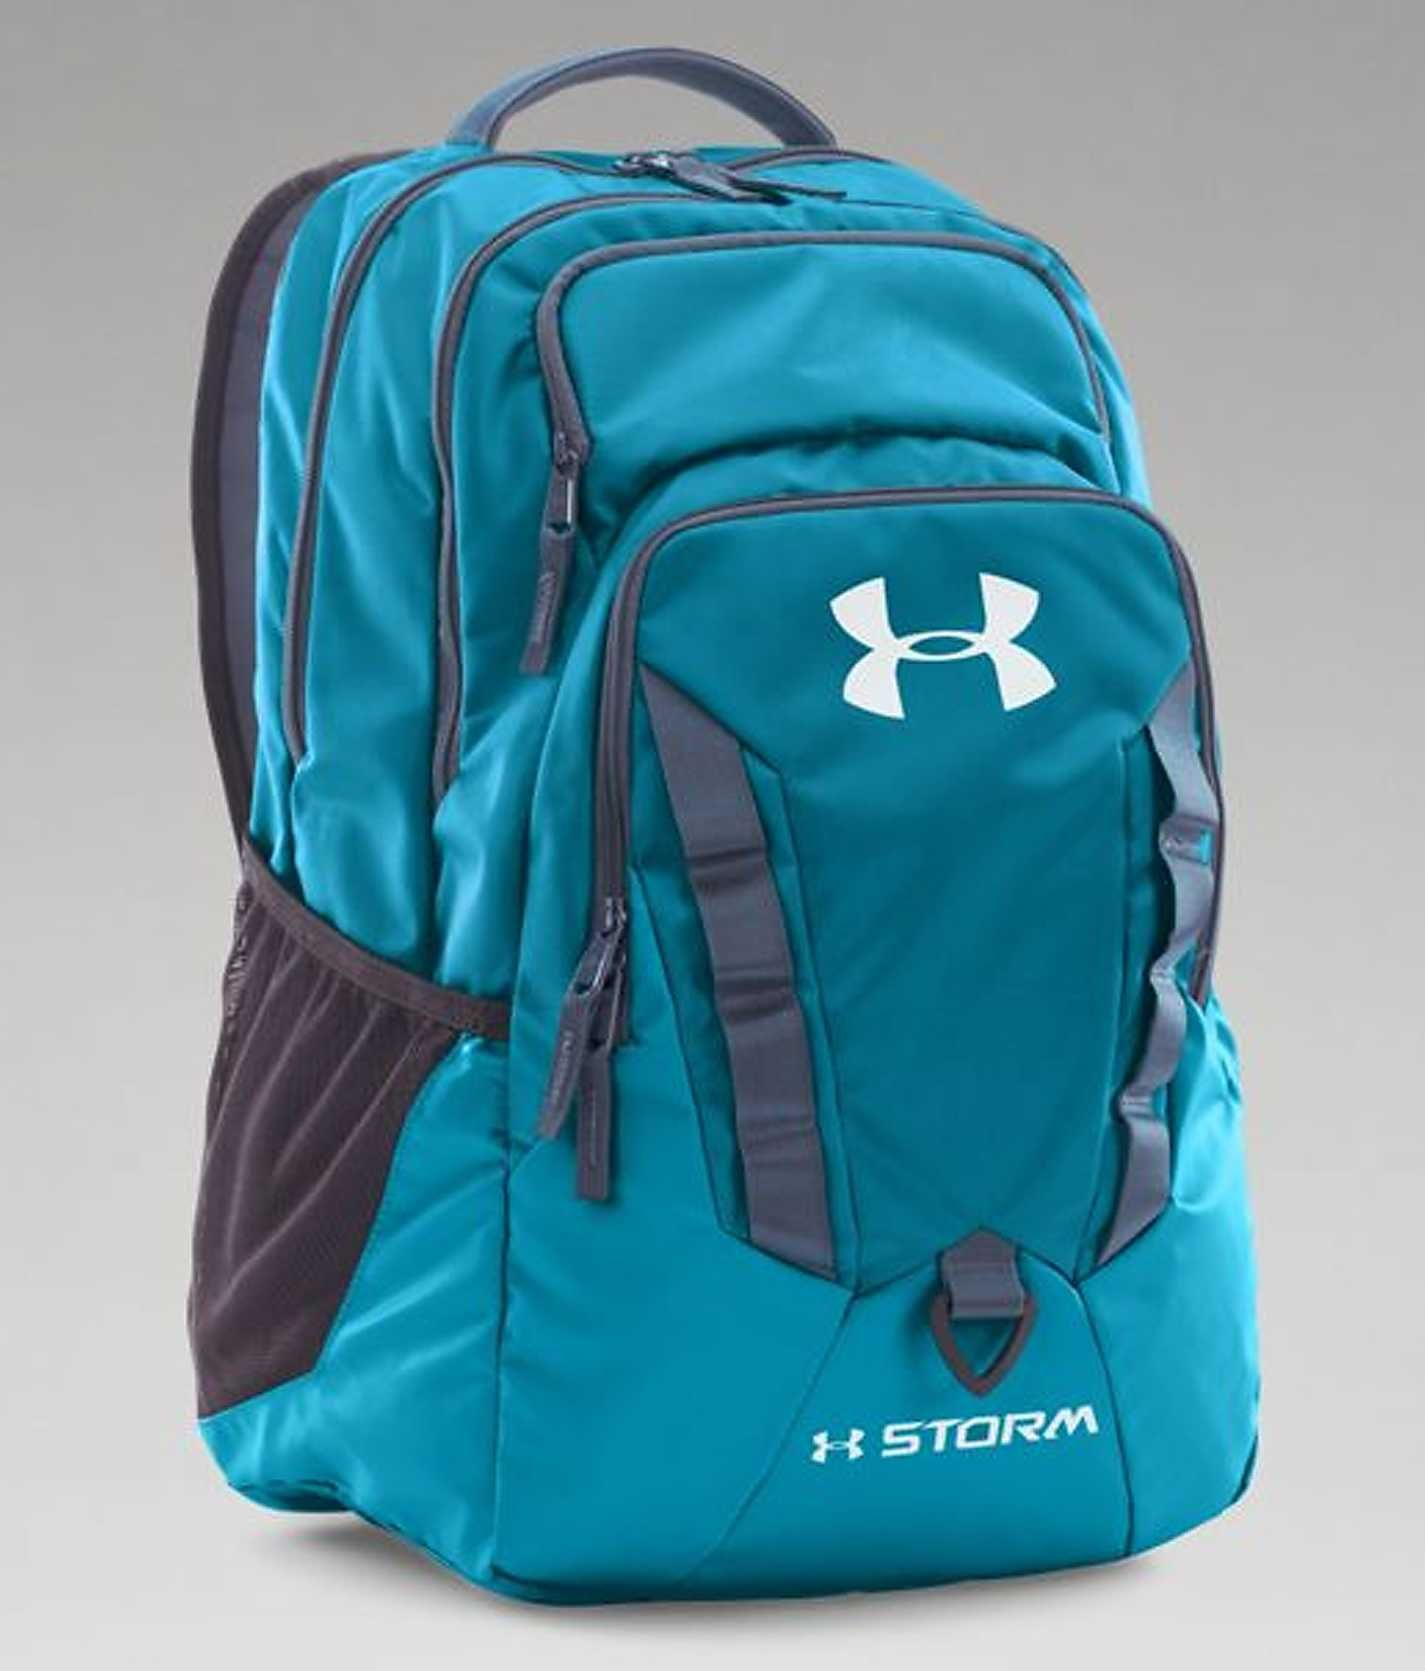 Under Armour® Recruit Backpack - Women s Activewear   Buckle   Nike ... 5f64344b69